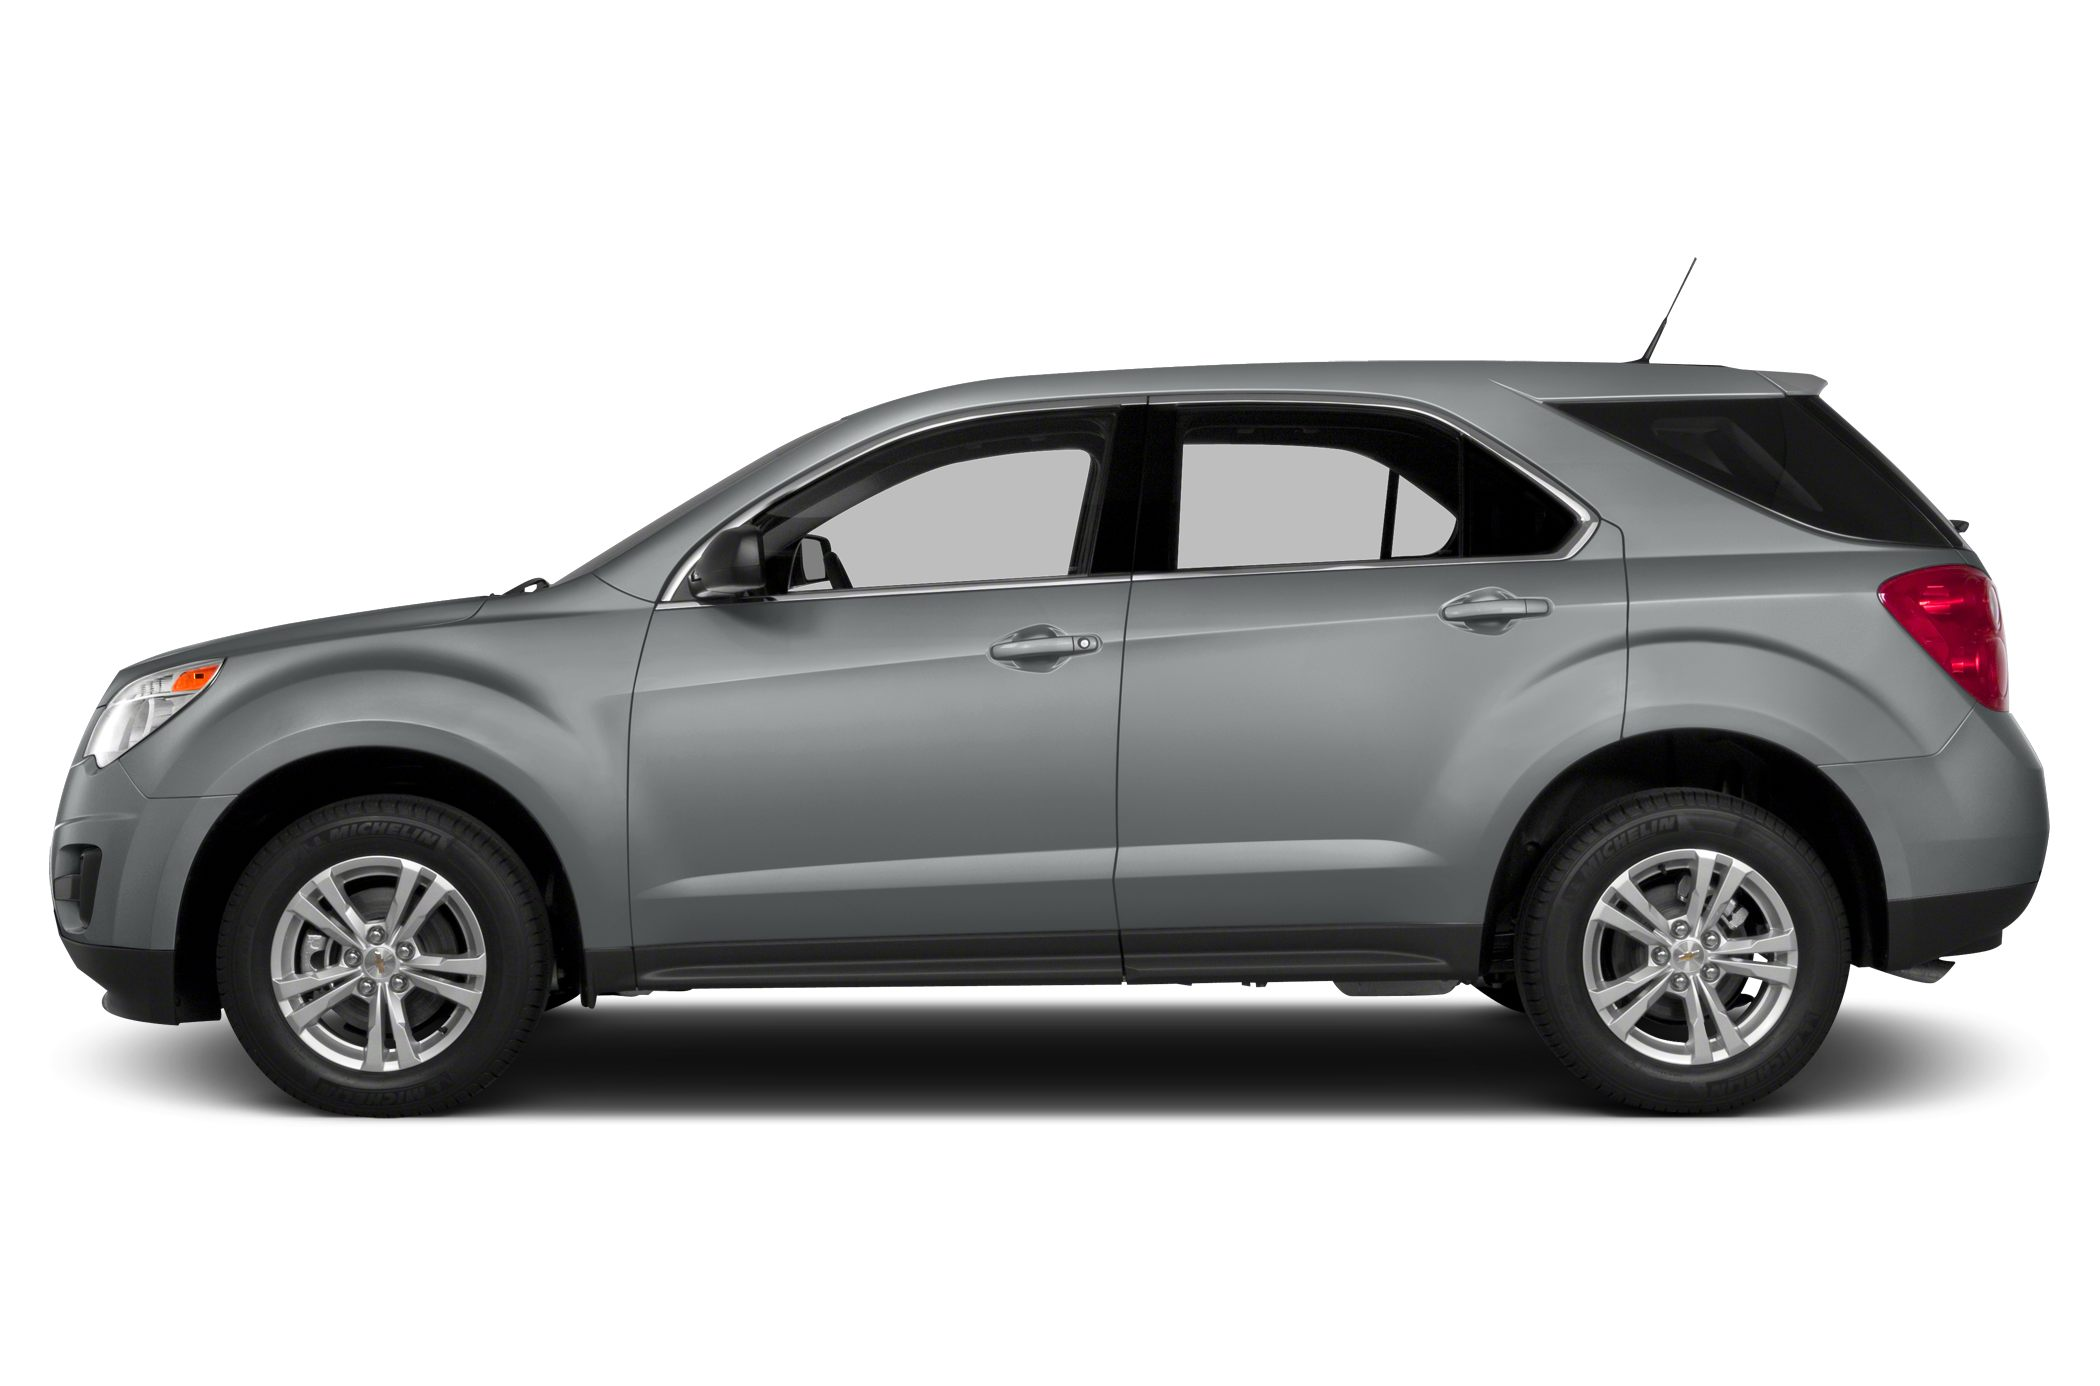 2014 chevrolet equinox pictures information and specs auto. Black Bedroom Furniture Sets. Home Design Ideas